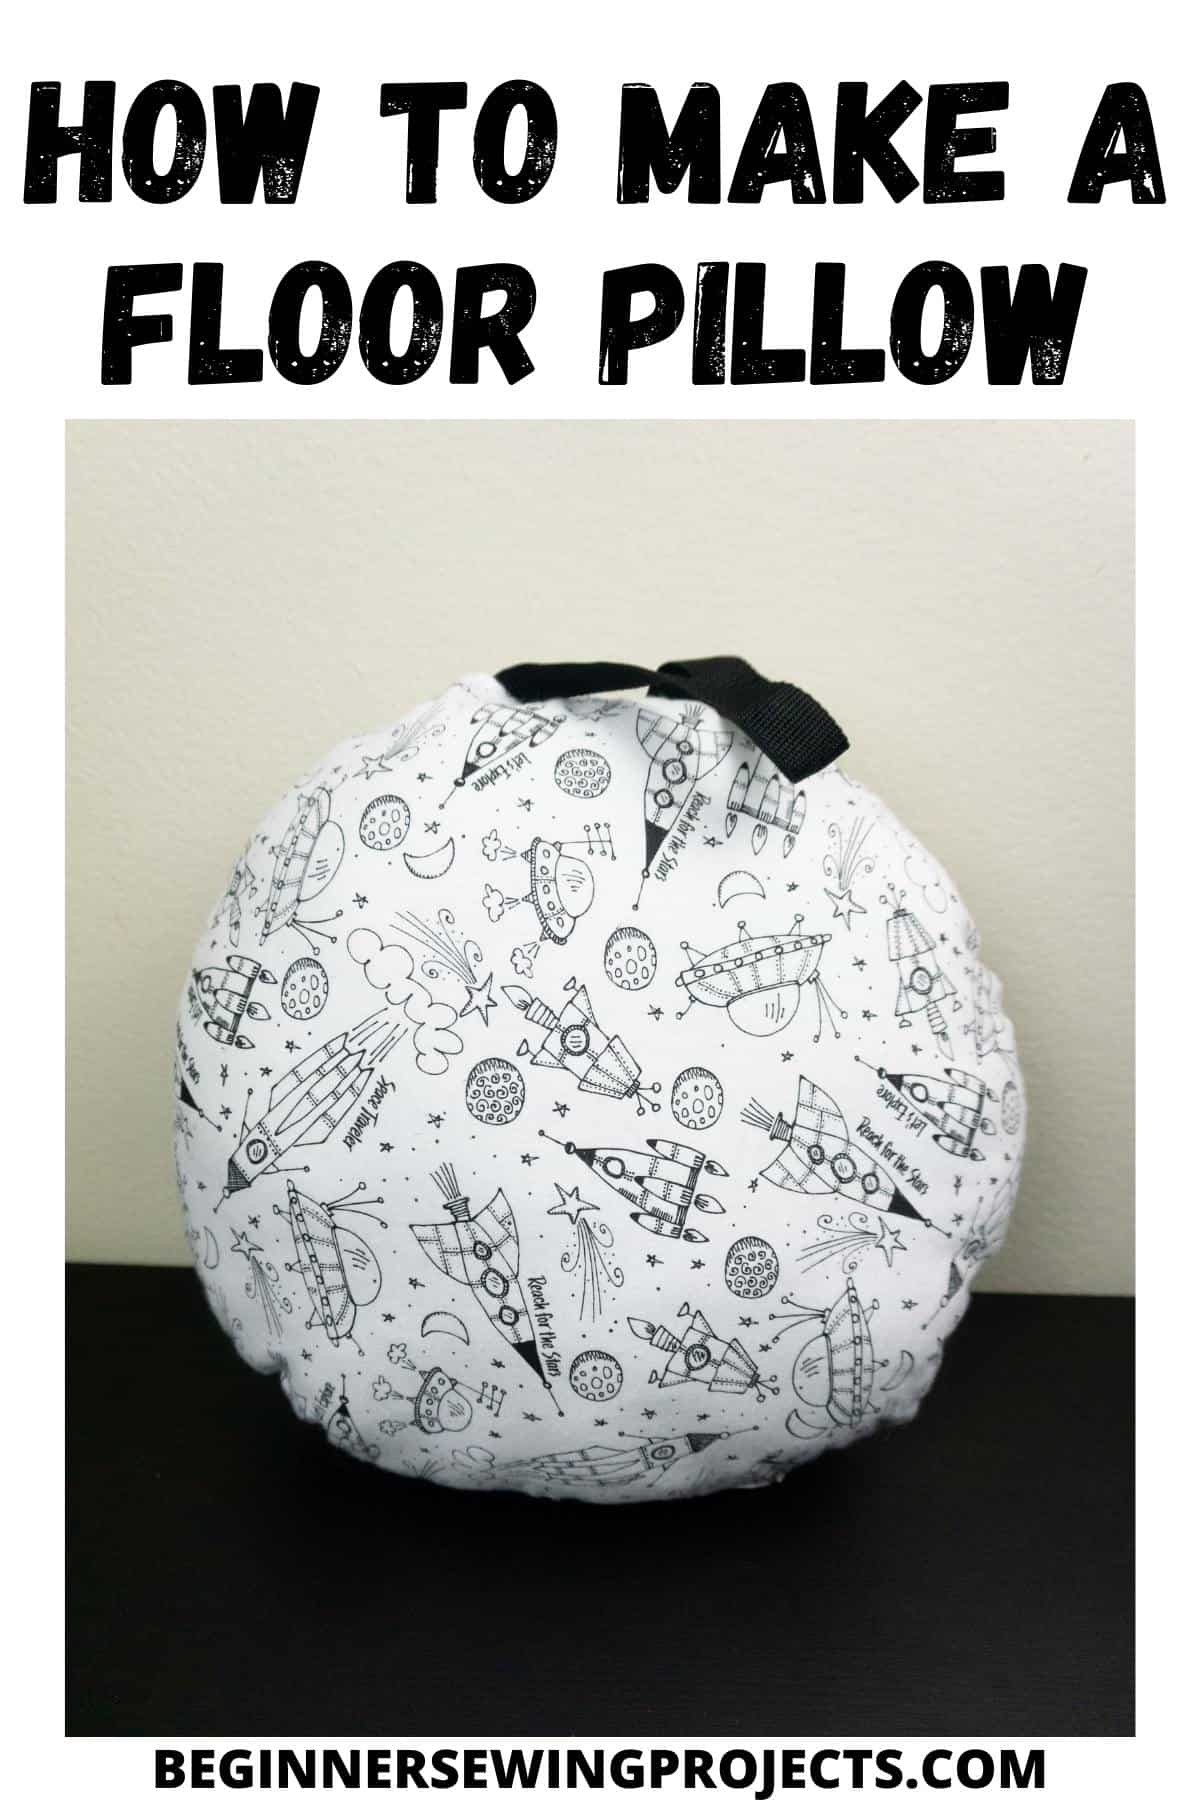 How To Make A Floor Pillow